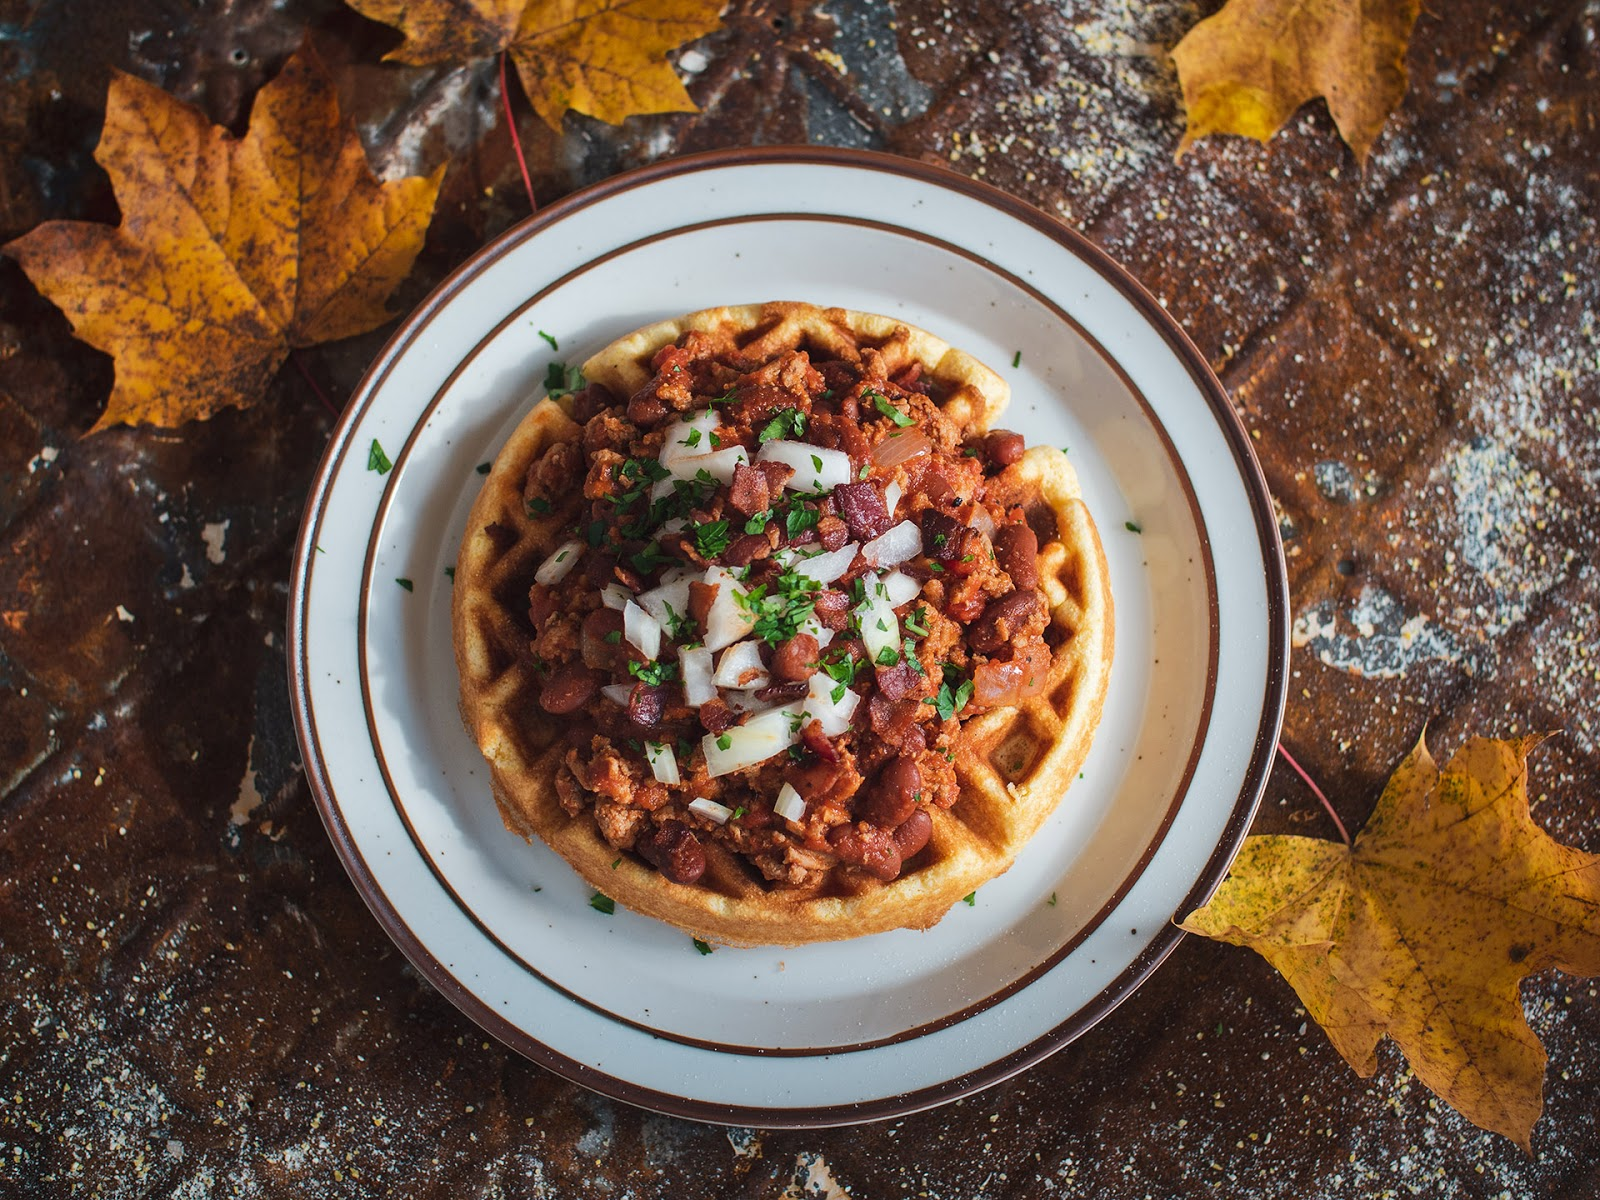 Maple Bacon Bourbon Chili On Cornbread Waffle | Local Food Rocks